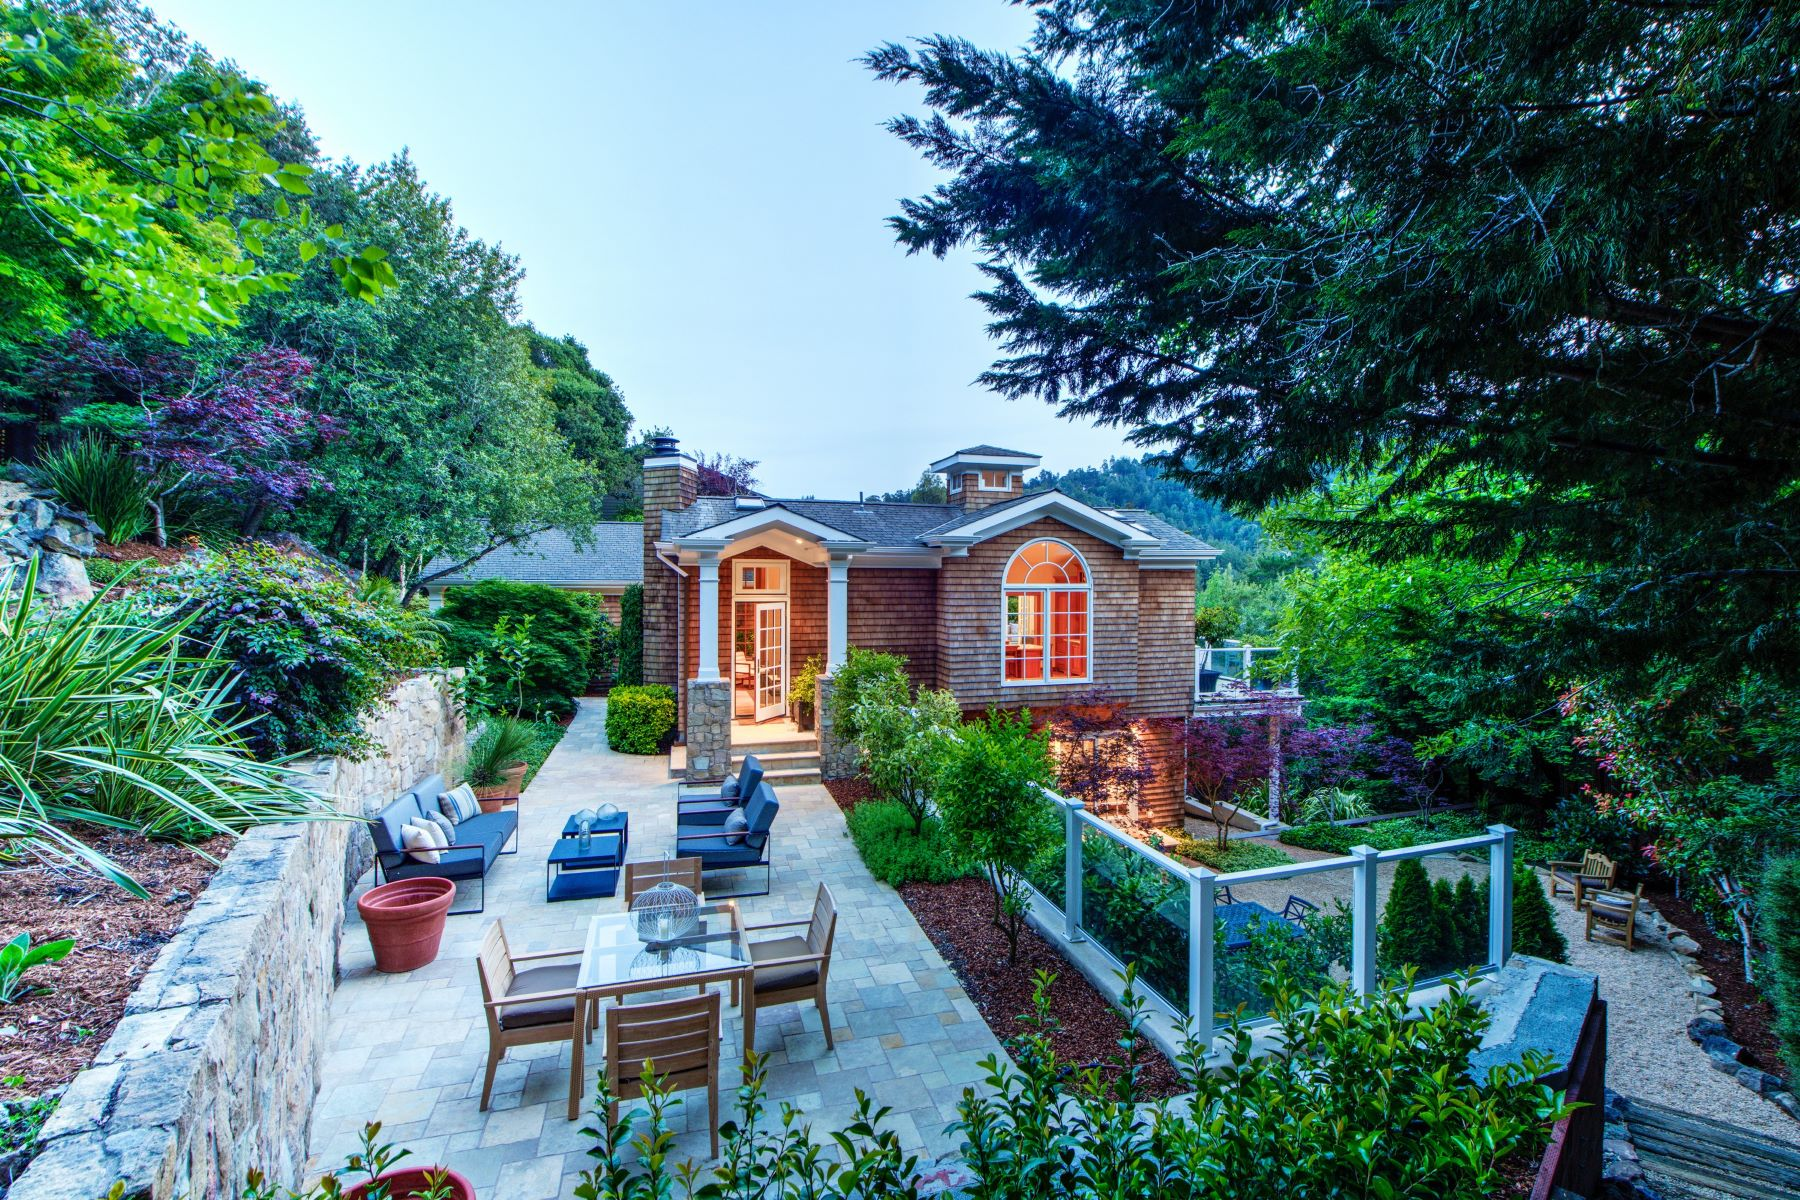 Single Family Homes for Sale at Serene Mill Valley Sanctuary 365 Lovell Ave Mill Valley, California 94941 United States